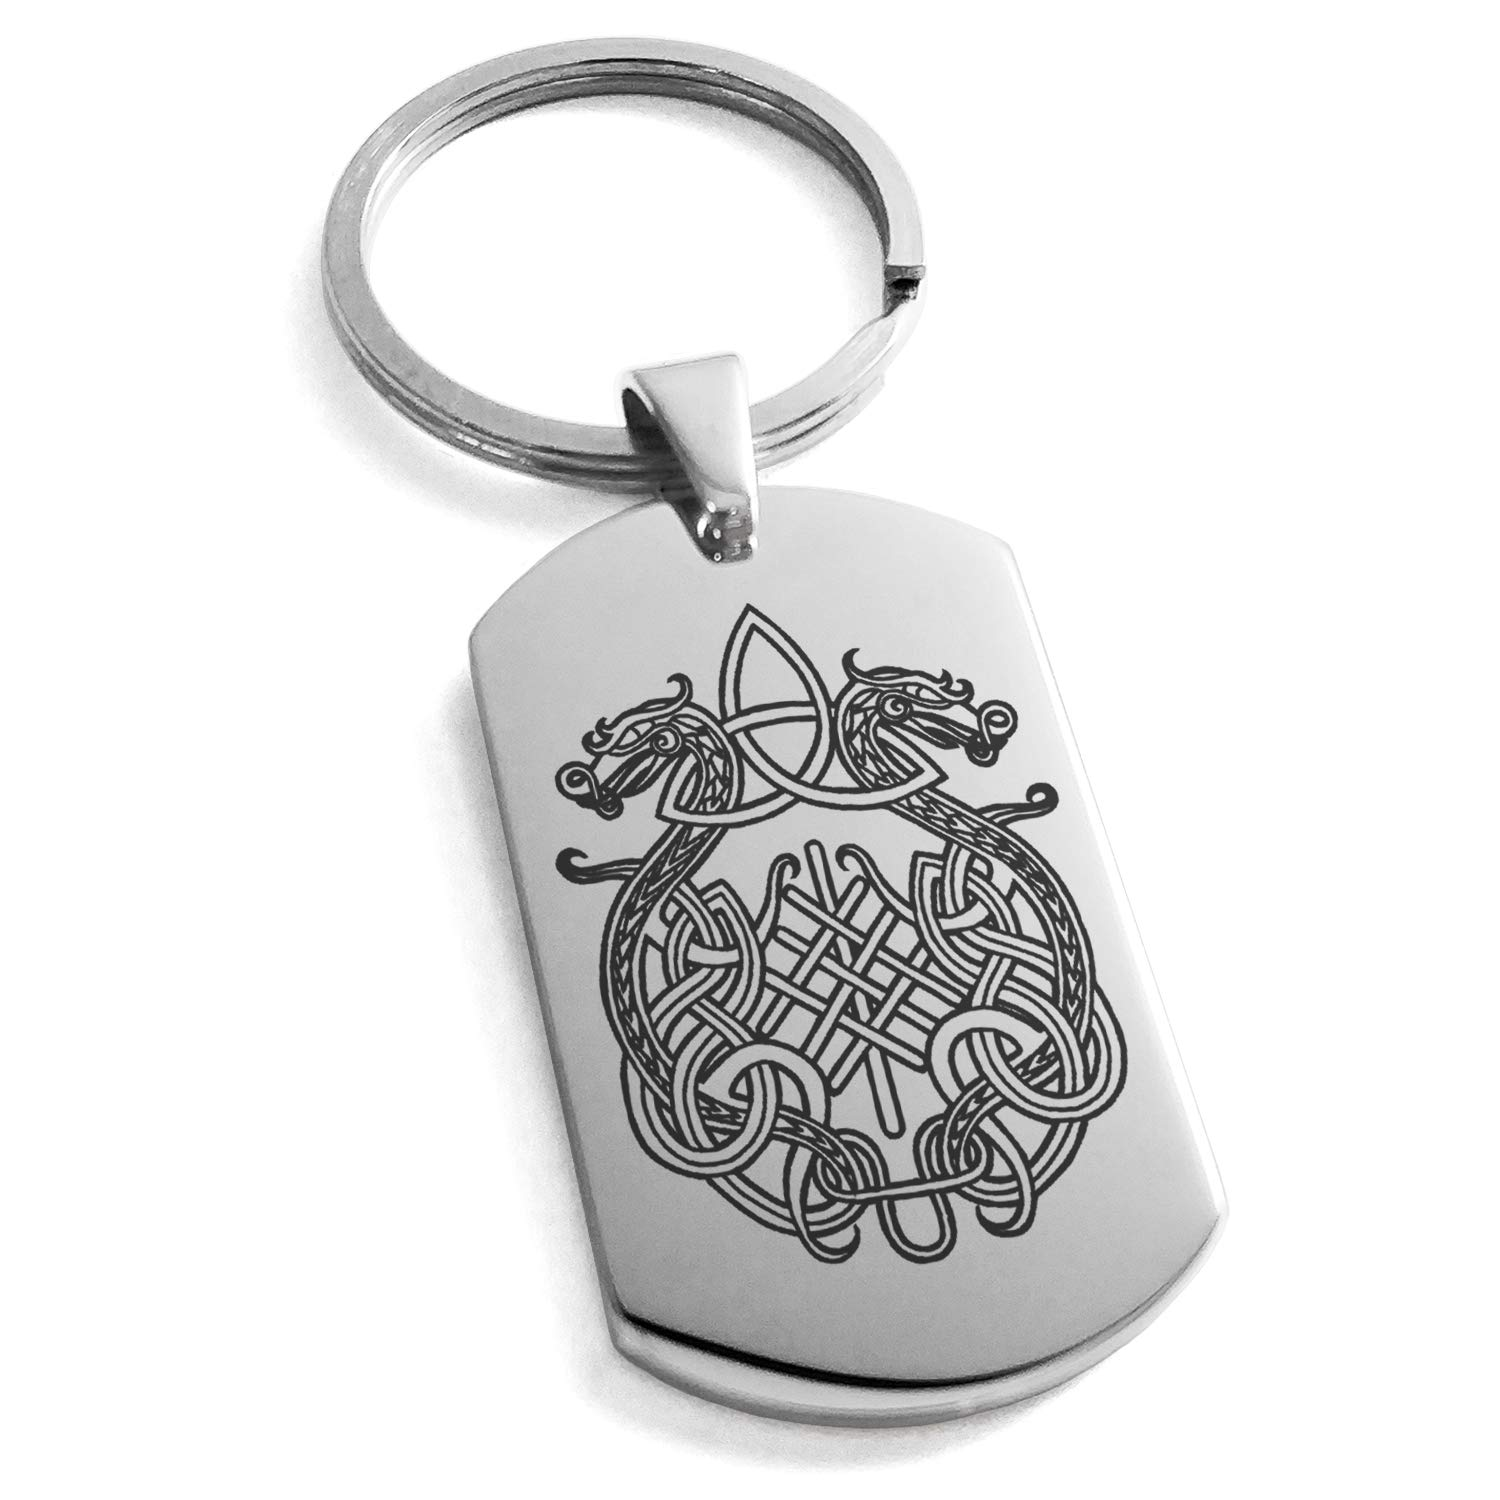 Tioneer Stainless Steel Dragon Knot Skuld's Net Viking Rune Symbol Engraved Dog Tag Keychain Keyring